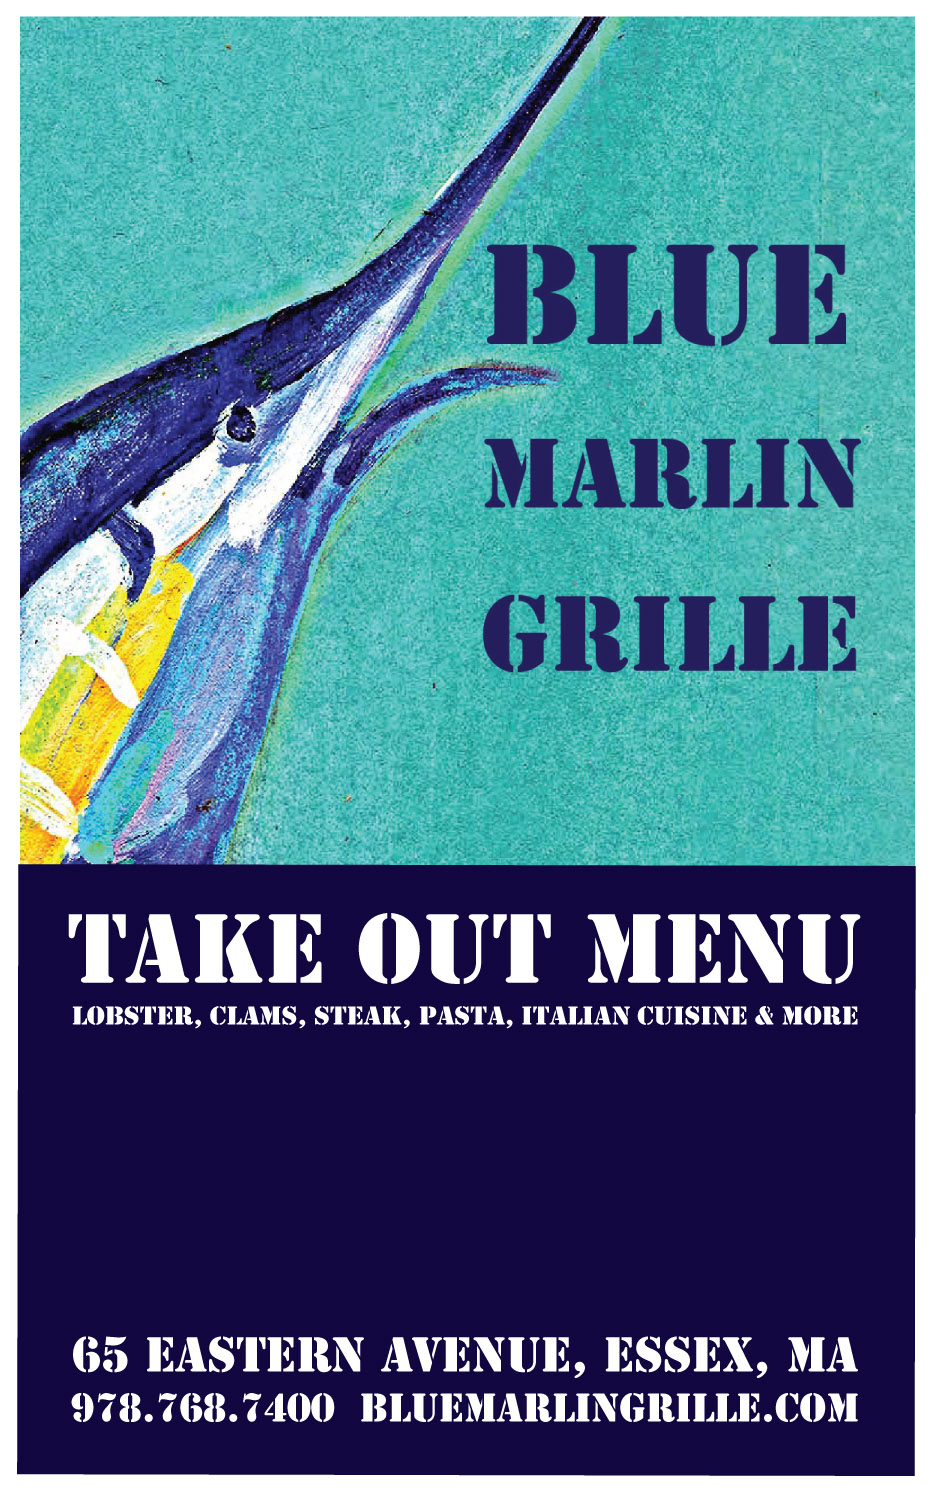 Blue Marlin Grille Take Out Menu